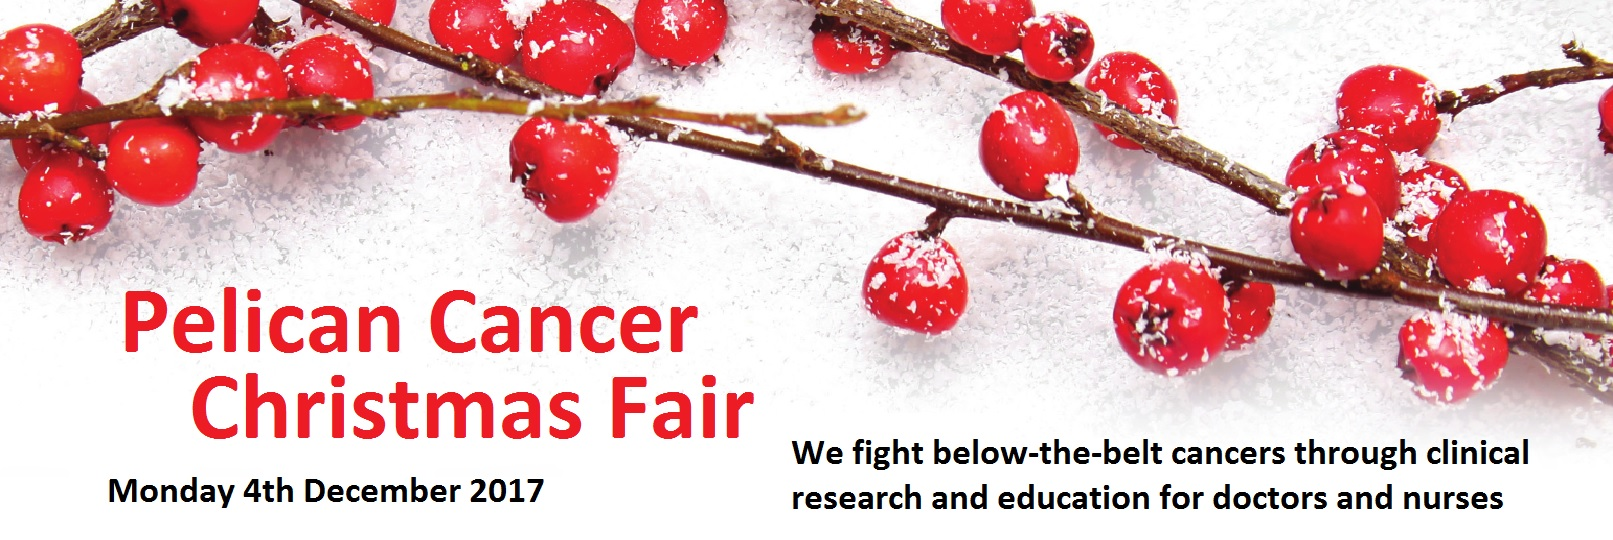 Pelican Cancer Christmas Fair